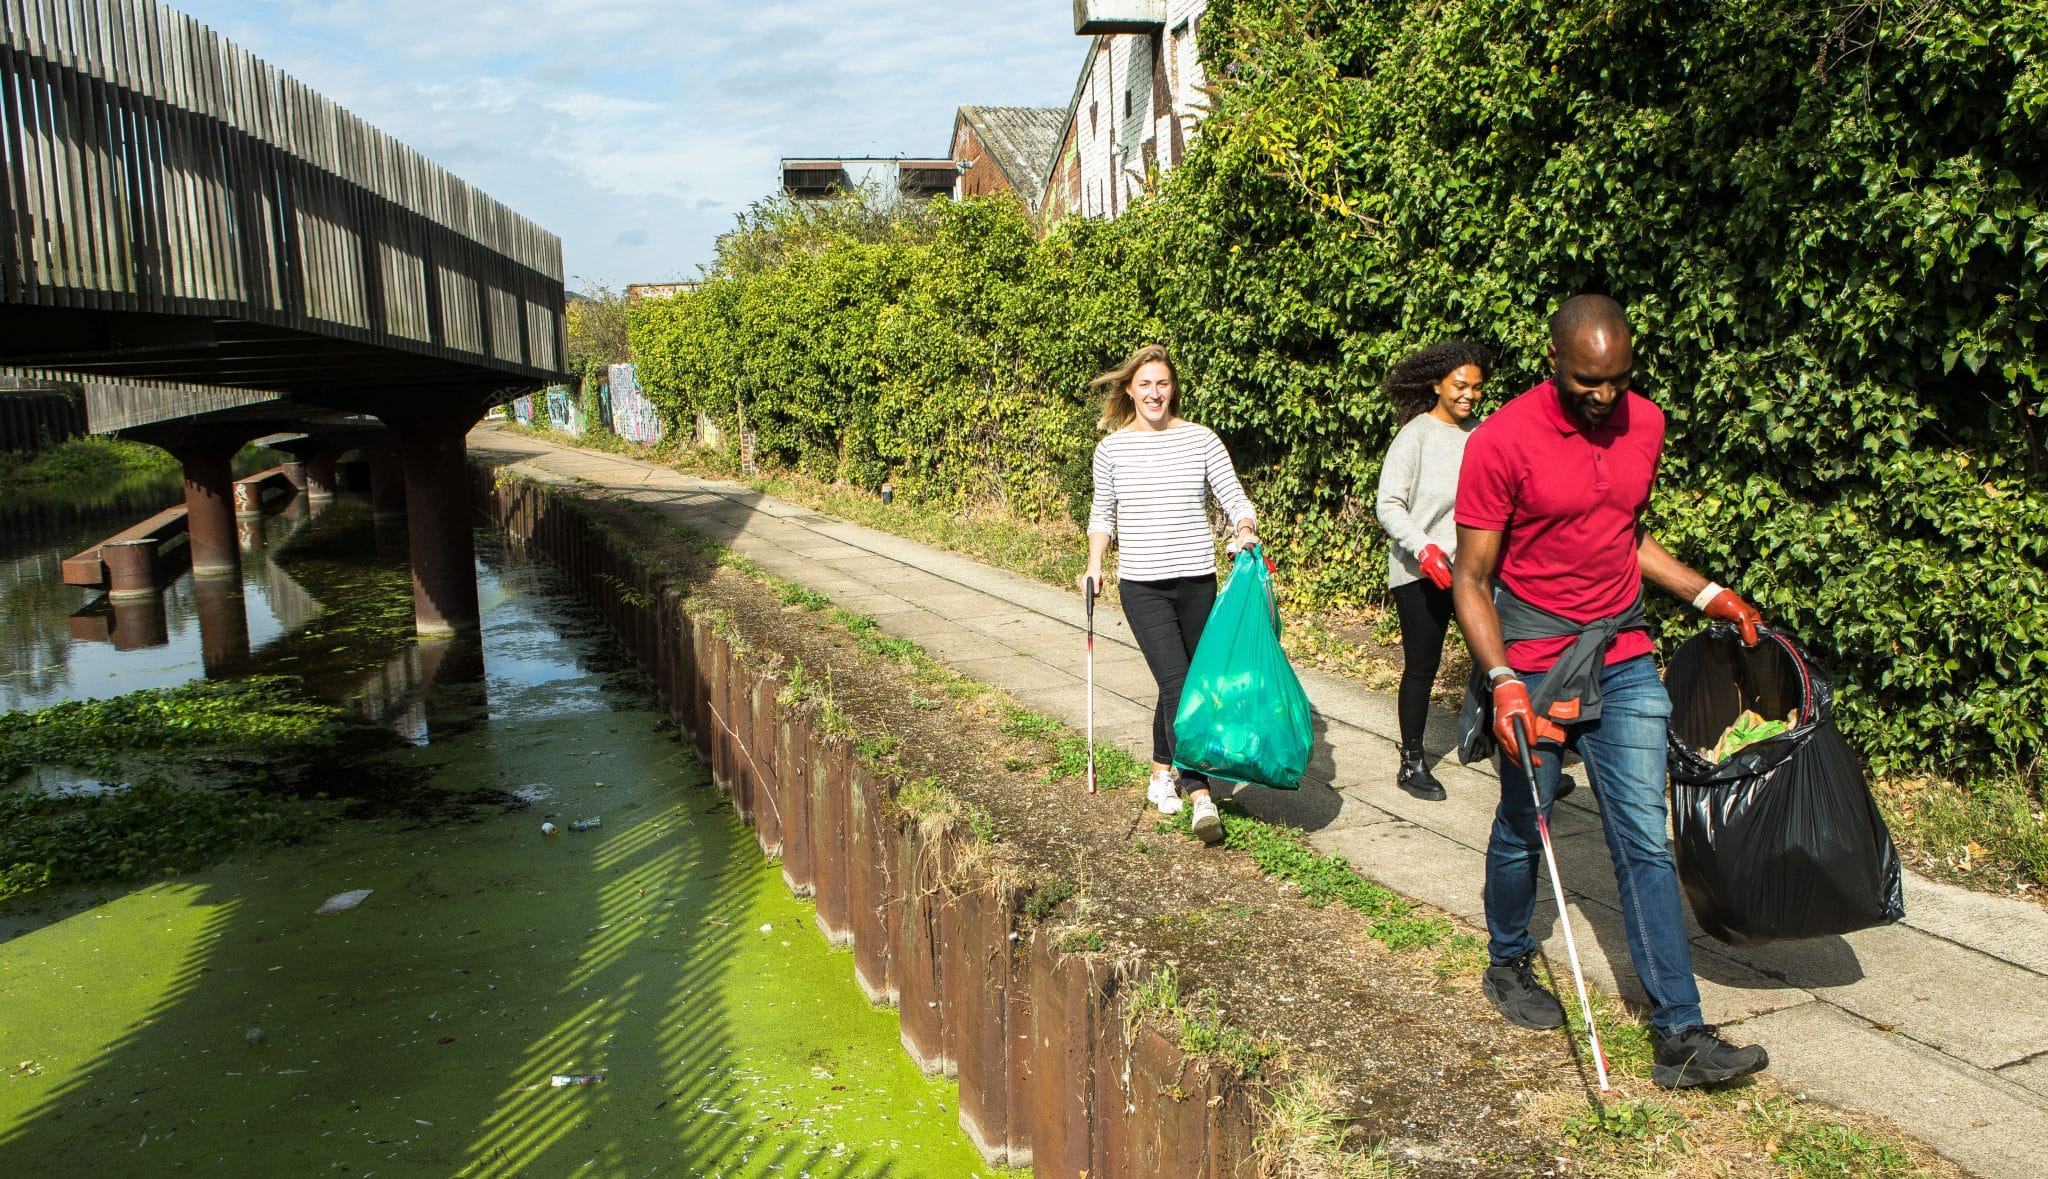 Three people man and two women litter picking along urban canal